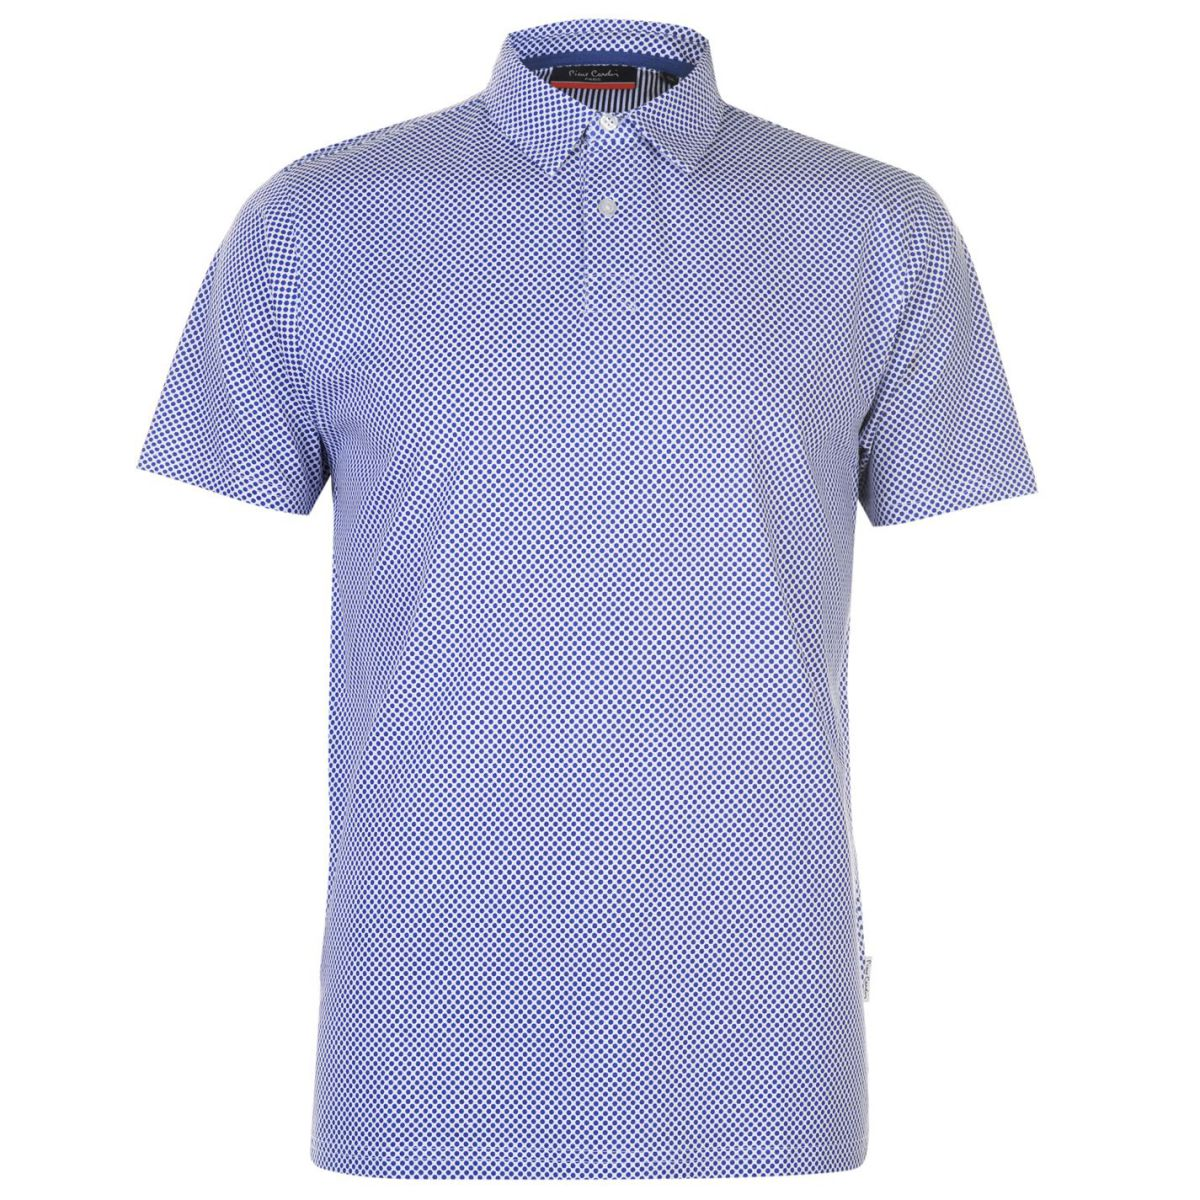 Pierre Cardin Stamp Polo Shirt Mens Gents Classic Fit Tee Top Short